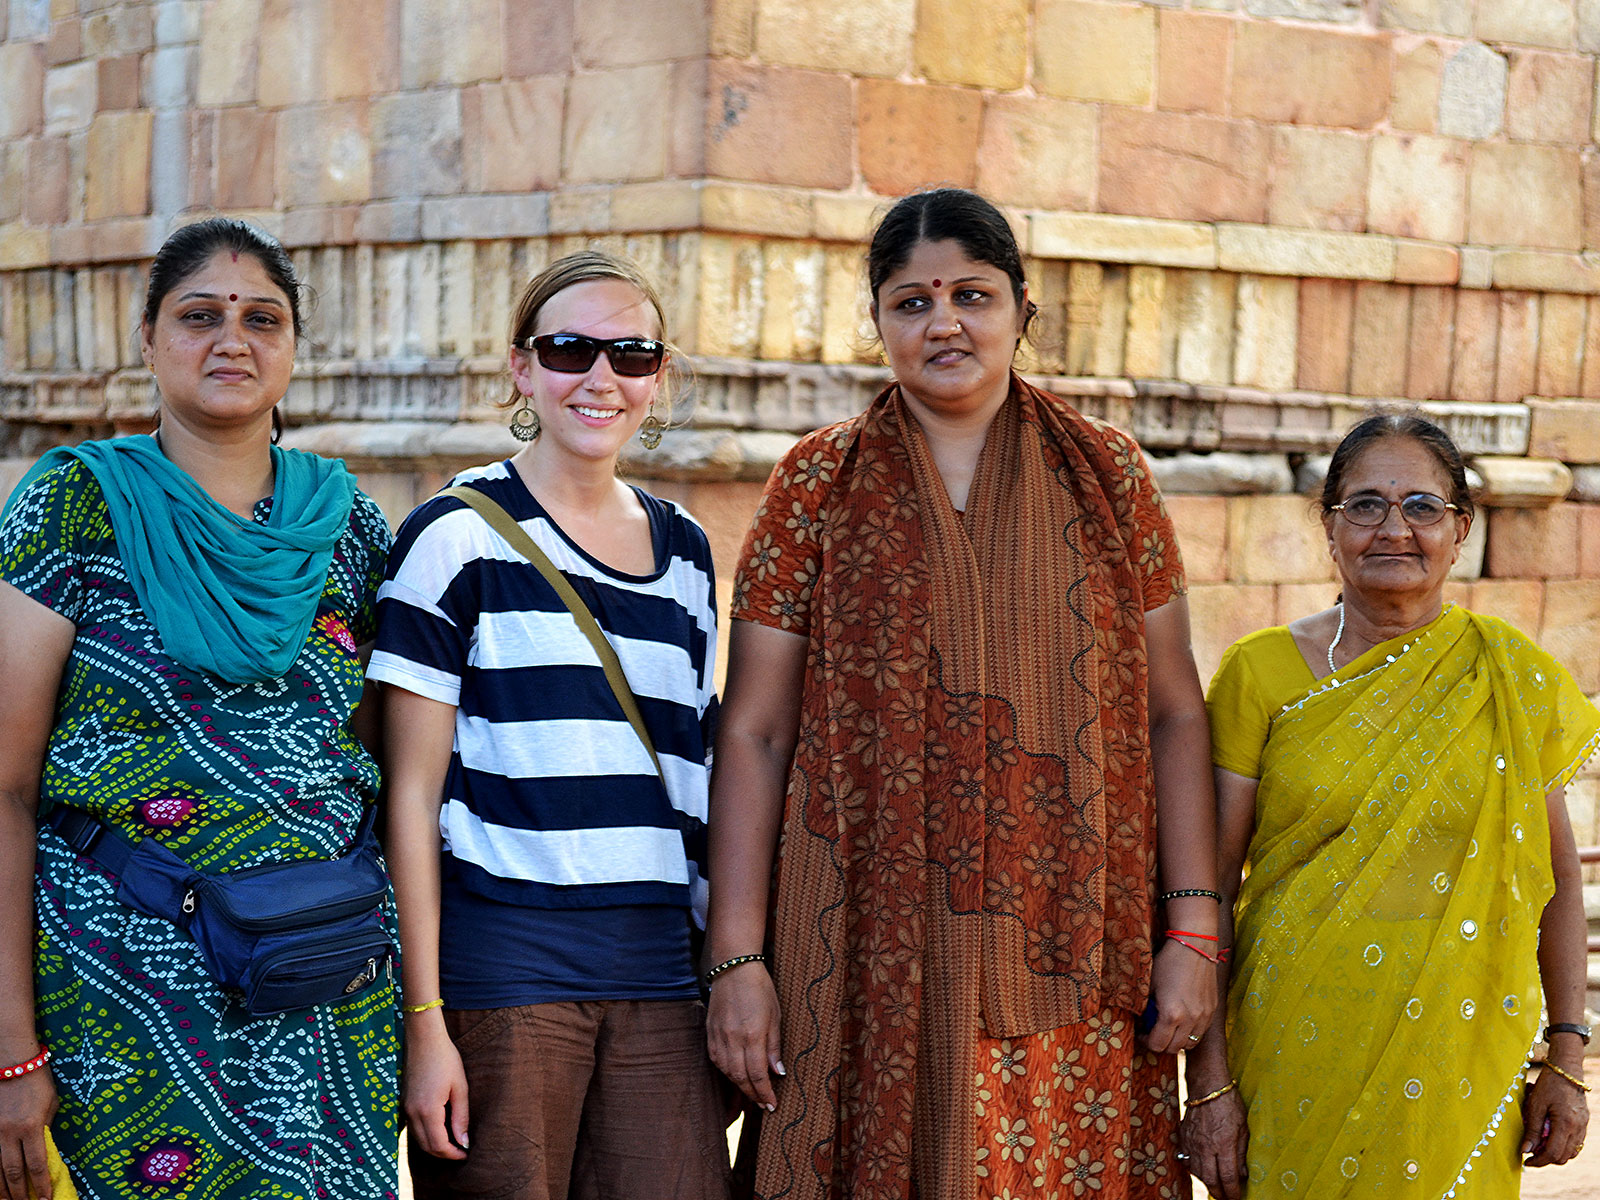 reis India gouden driehoek qutab minar | blog rama tours holland